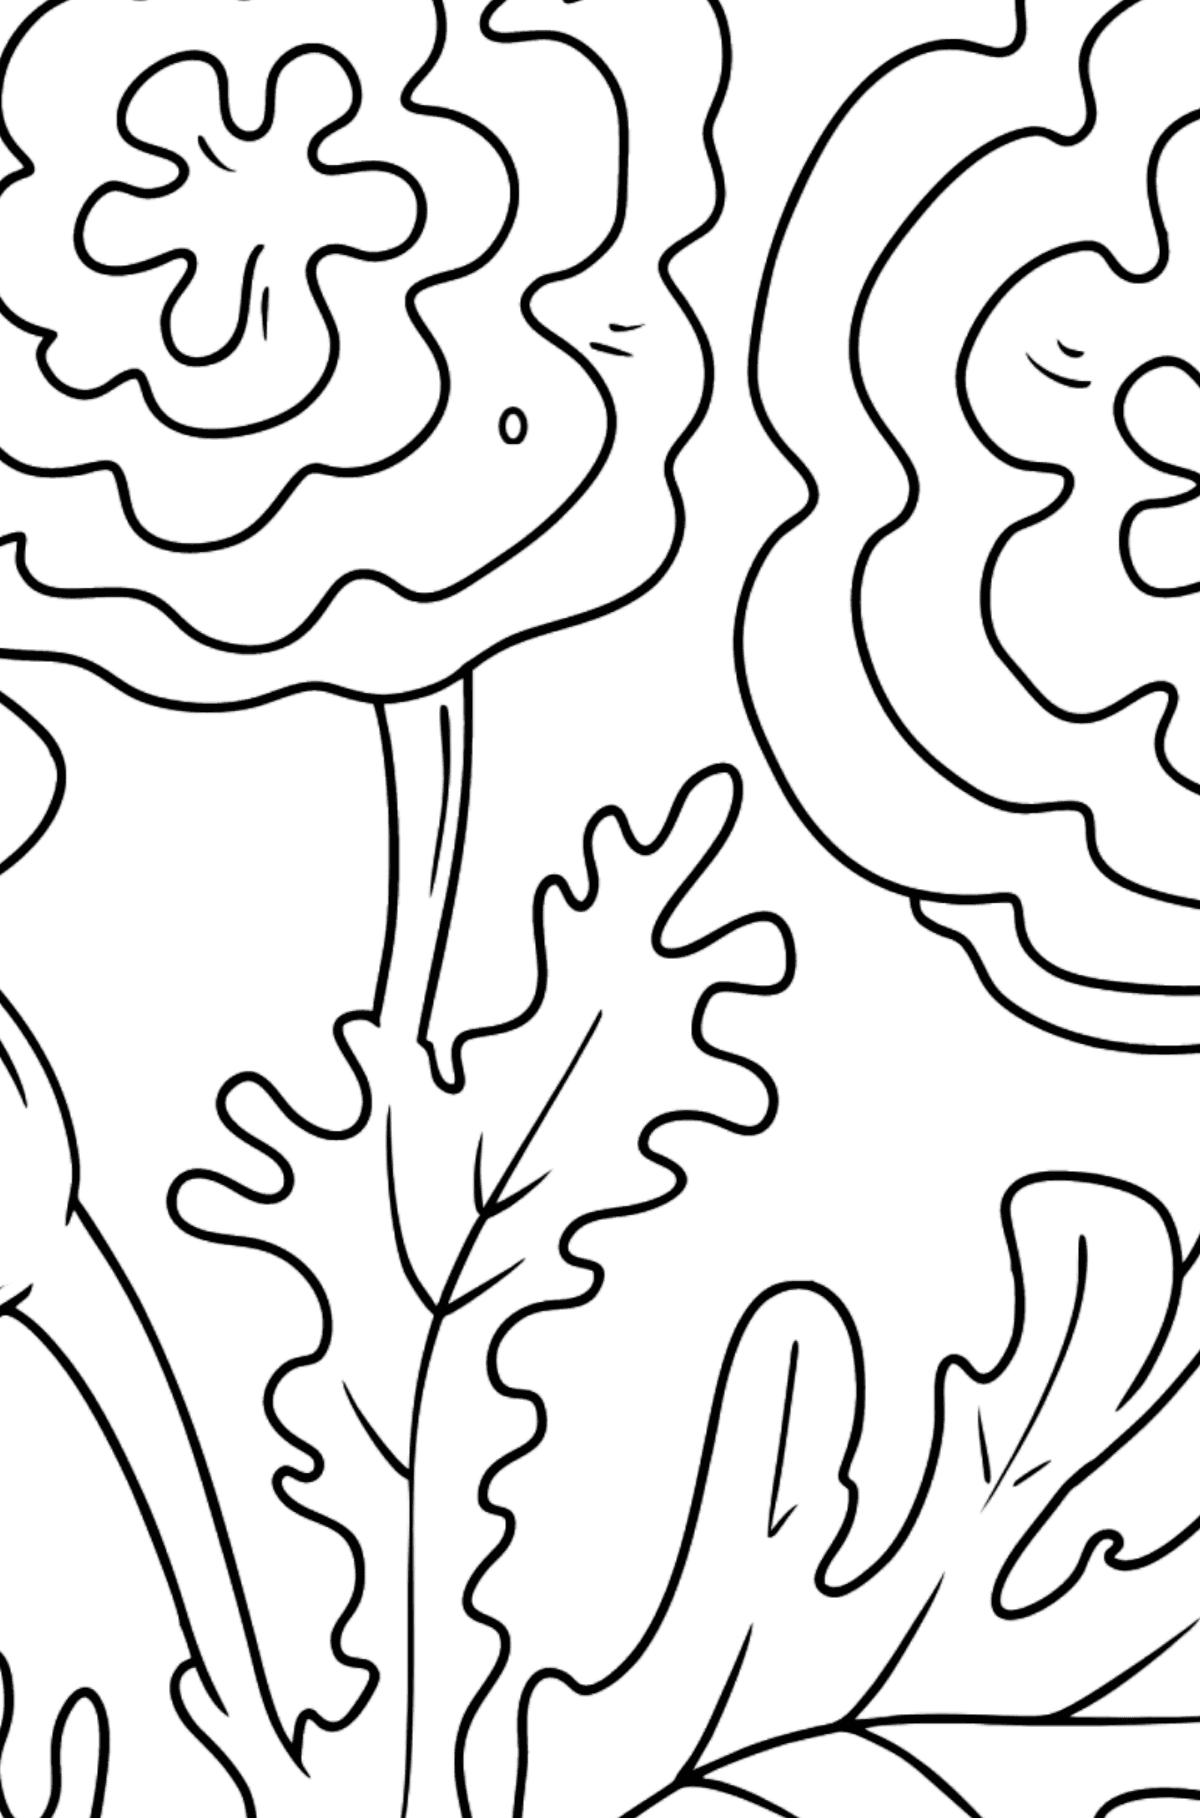 Coloring Page - Autumn flowers - Coloring by Symbols and Geometric Shapes for Kids